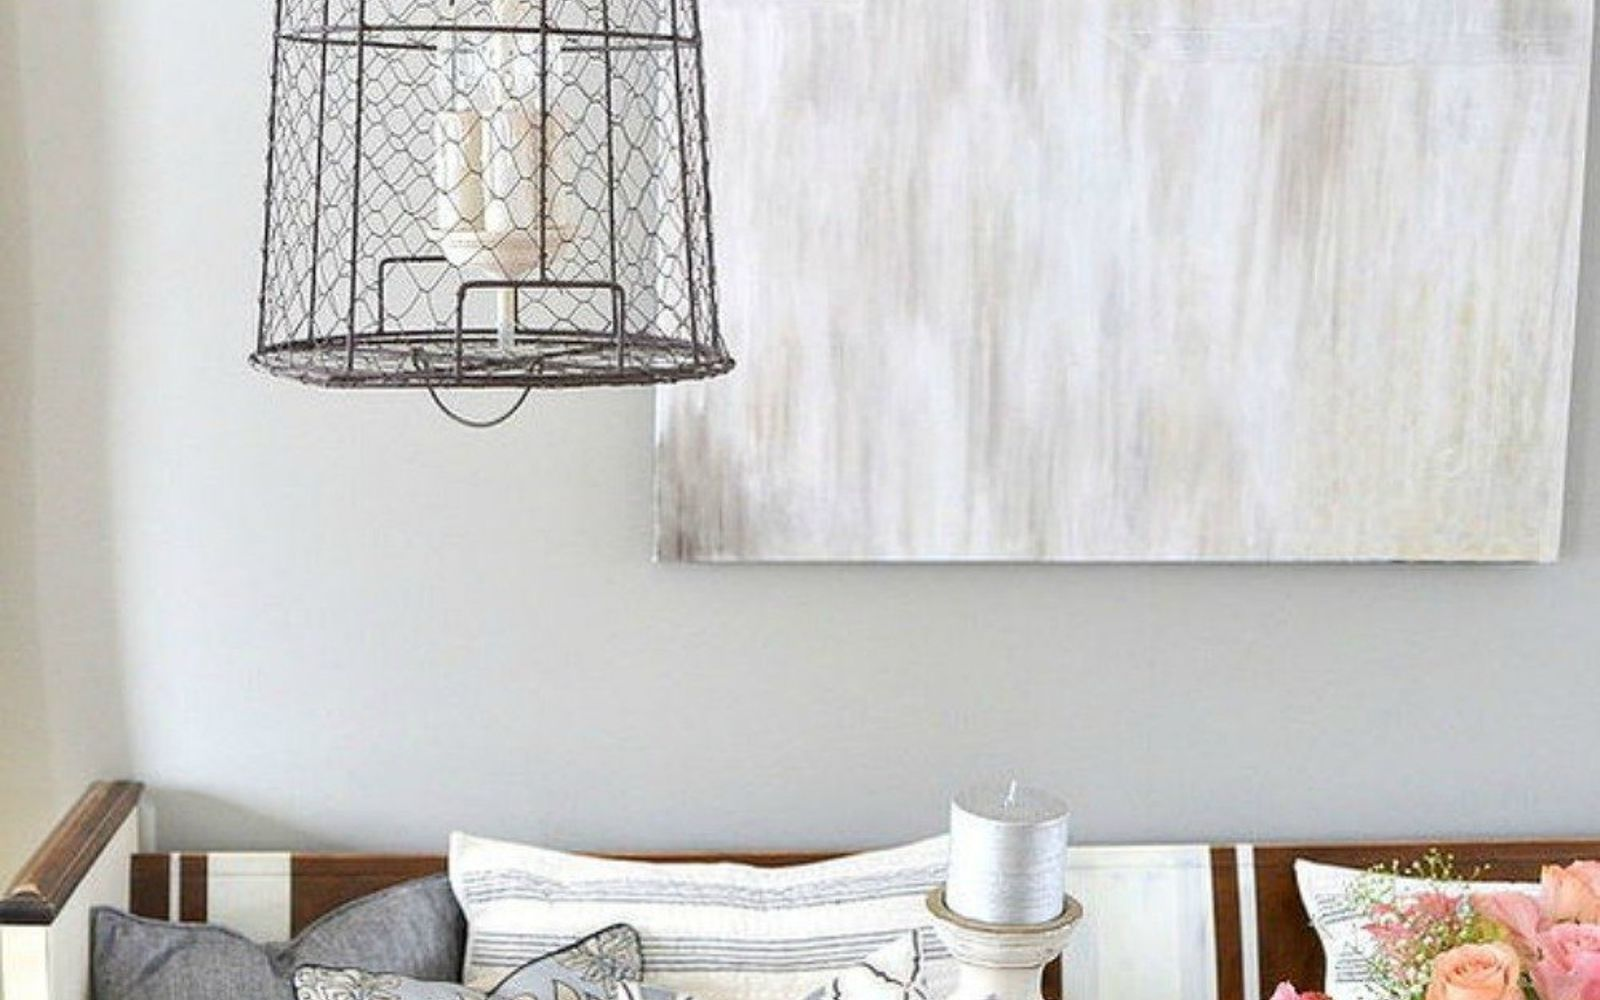 s 14 amazing basket ideas from highly creative moms, crafts, Or this boho chic farmhouse light